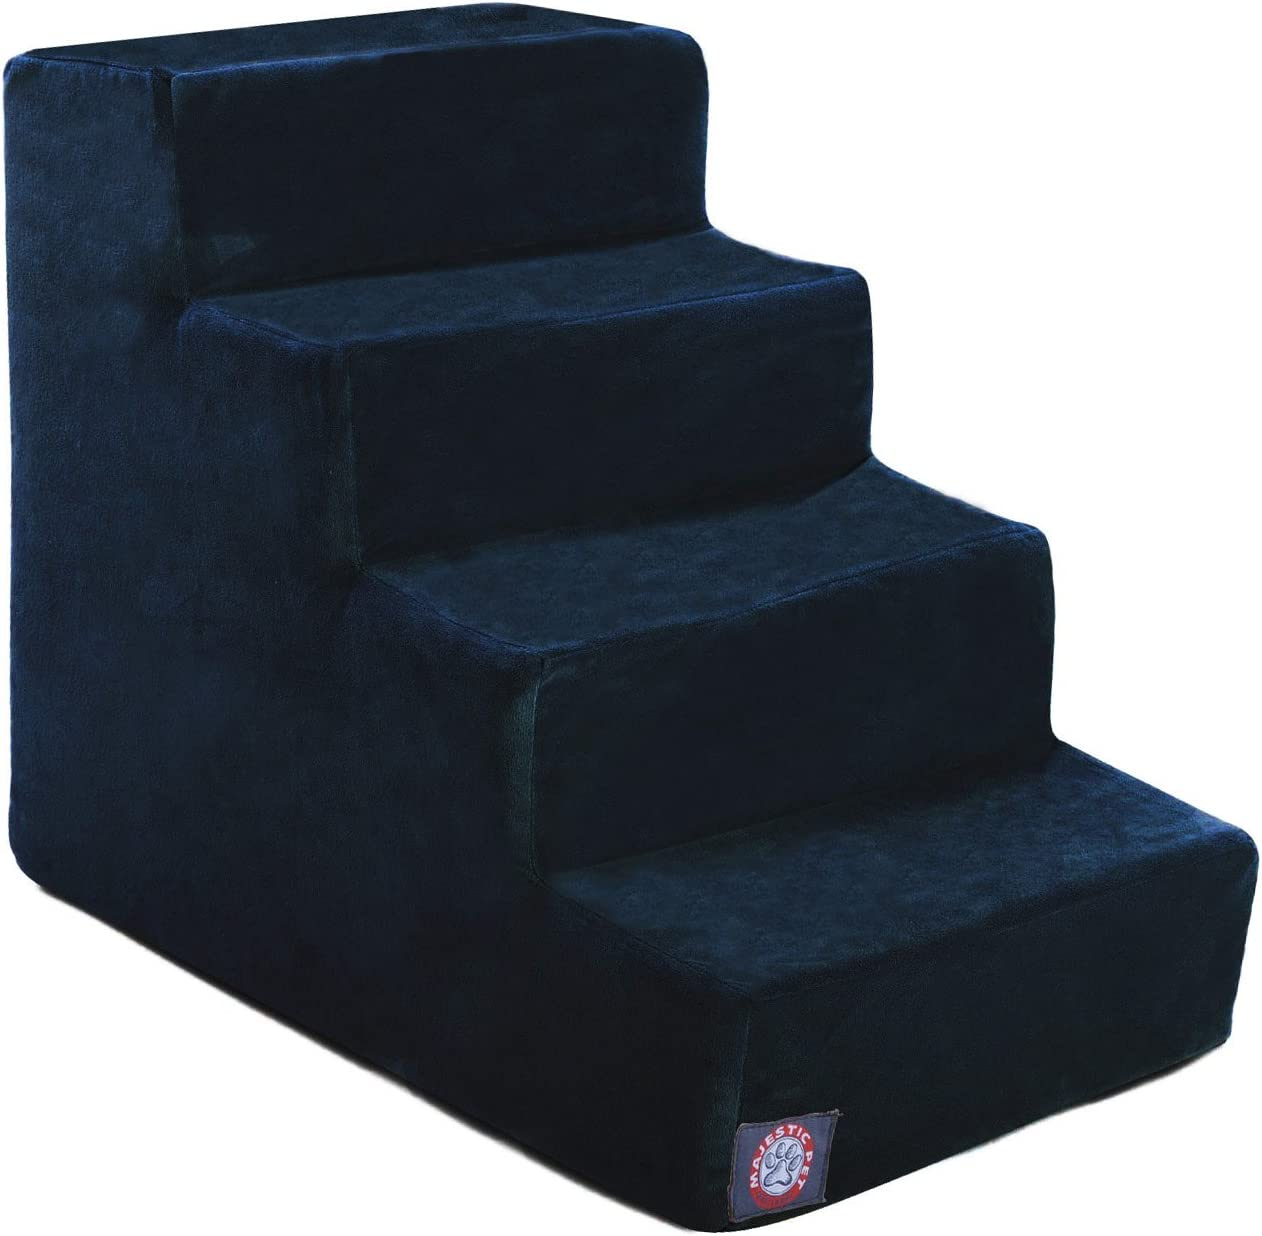 3 Step Black Velvet Suede Pet Stairs by Majestic Pet Products 71vdw4tXbGL